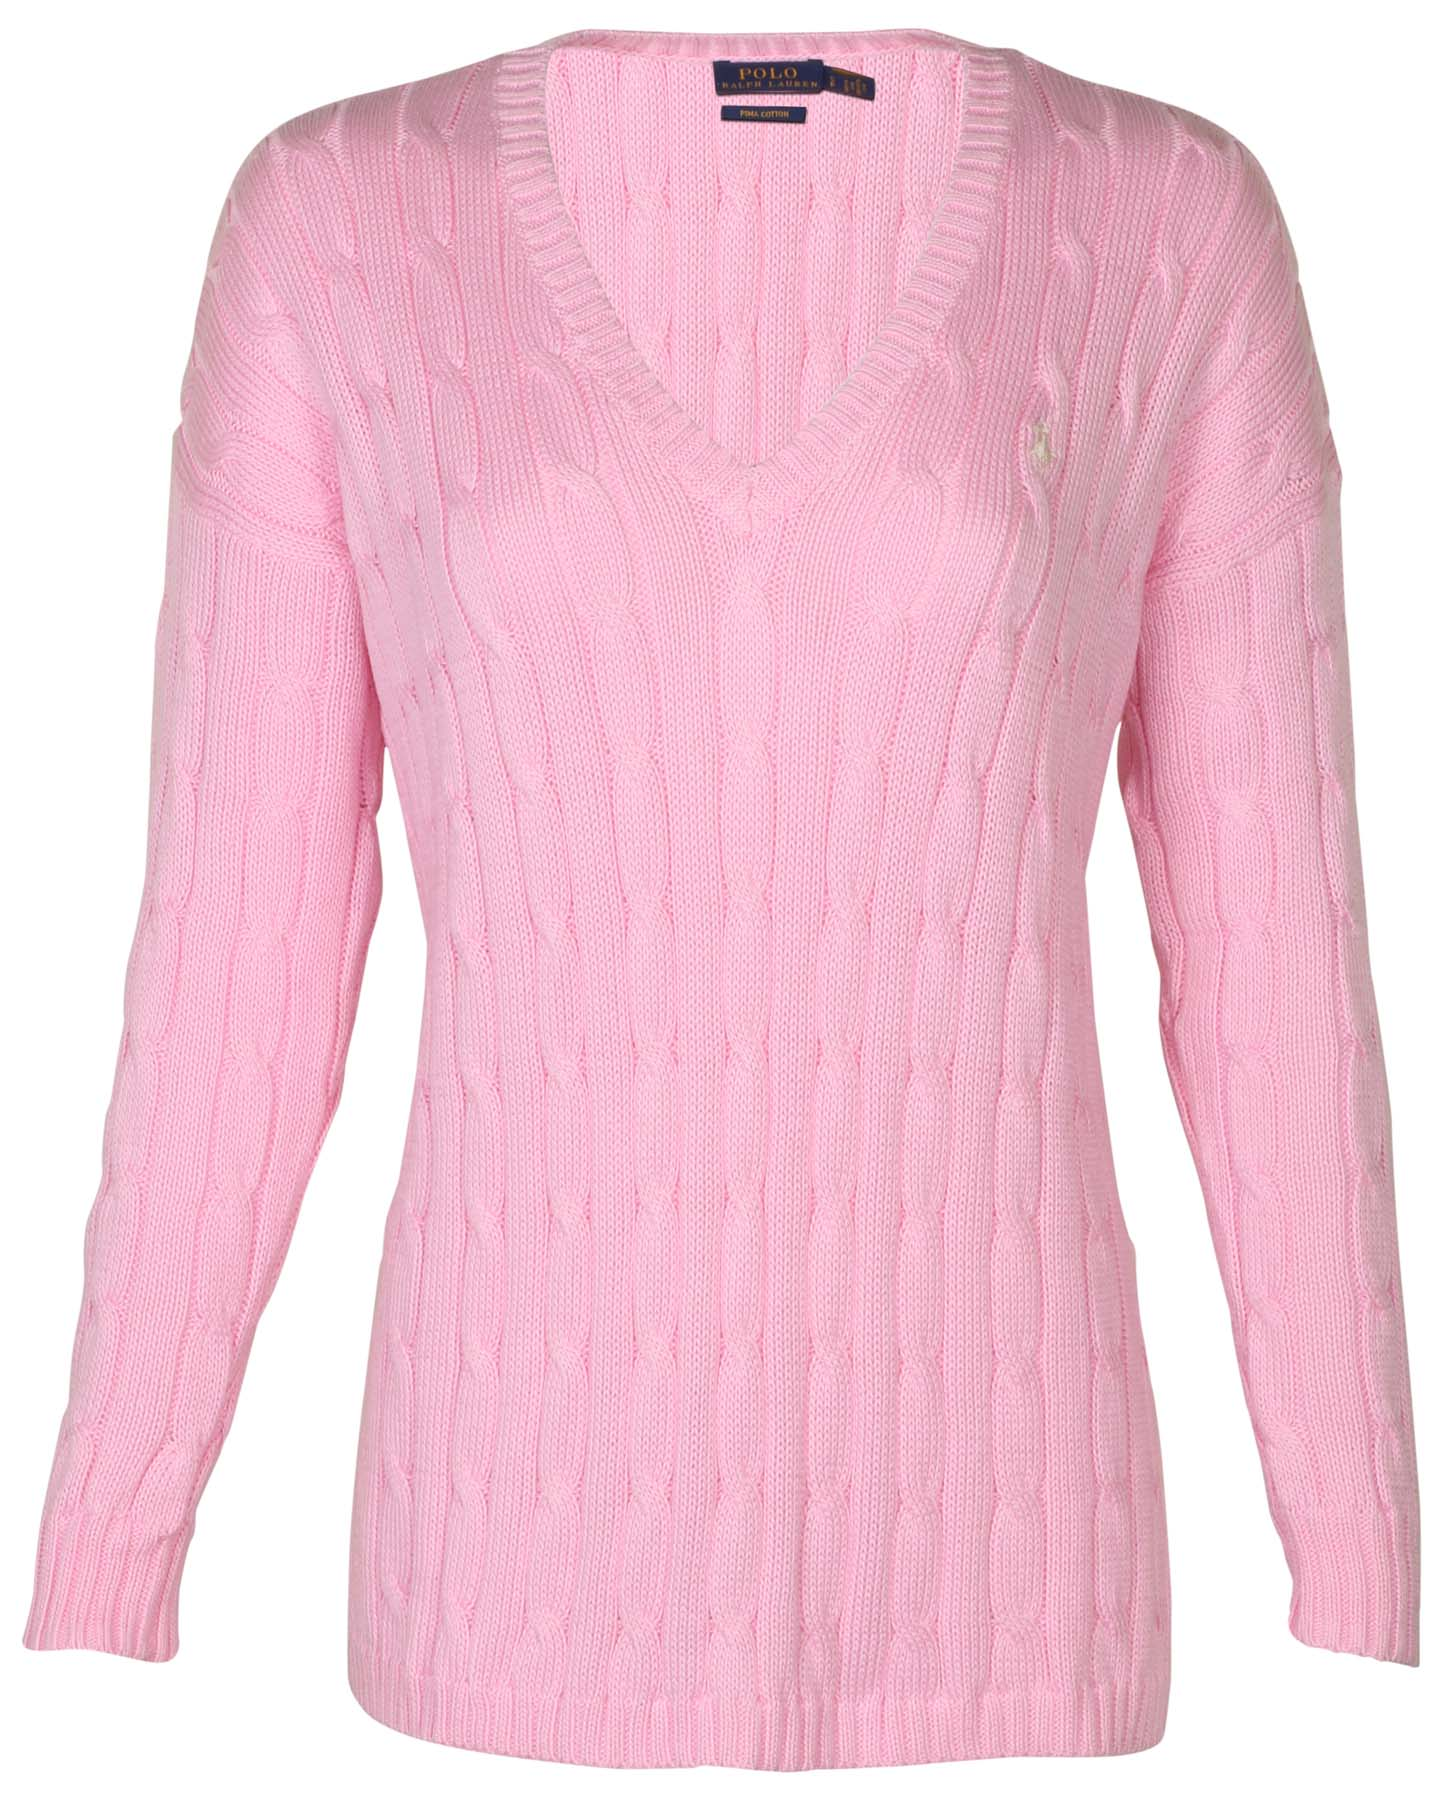 Polo Ralph Lauren Womens Cable Knit V Neck Pony Sweater Ebay